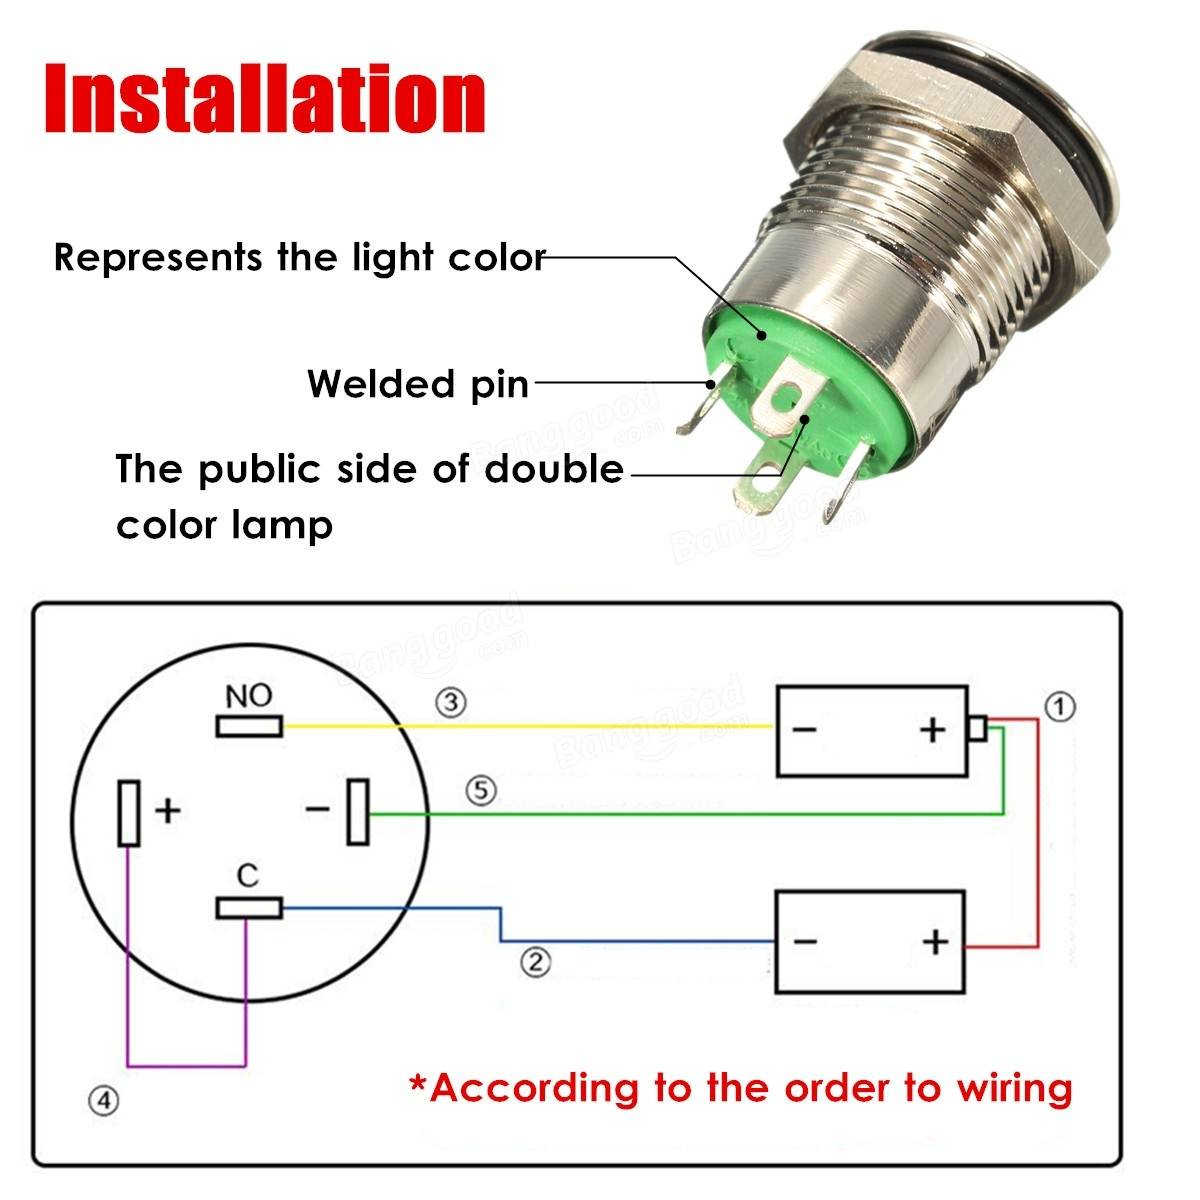 Wiring Diagram For 12v Led Switch: 12V 2A 9.5mm Waterproof LED Metal Cap Power Momentary Push